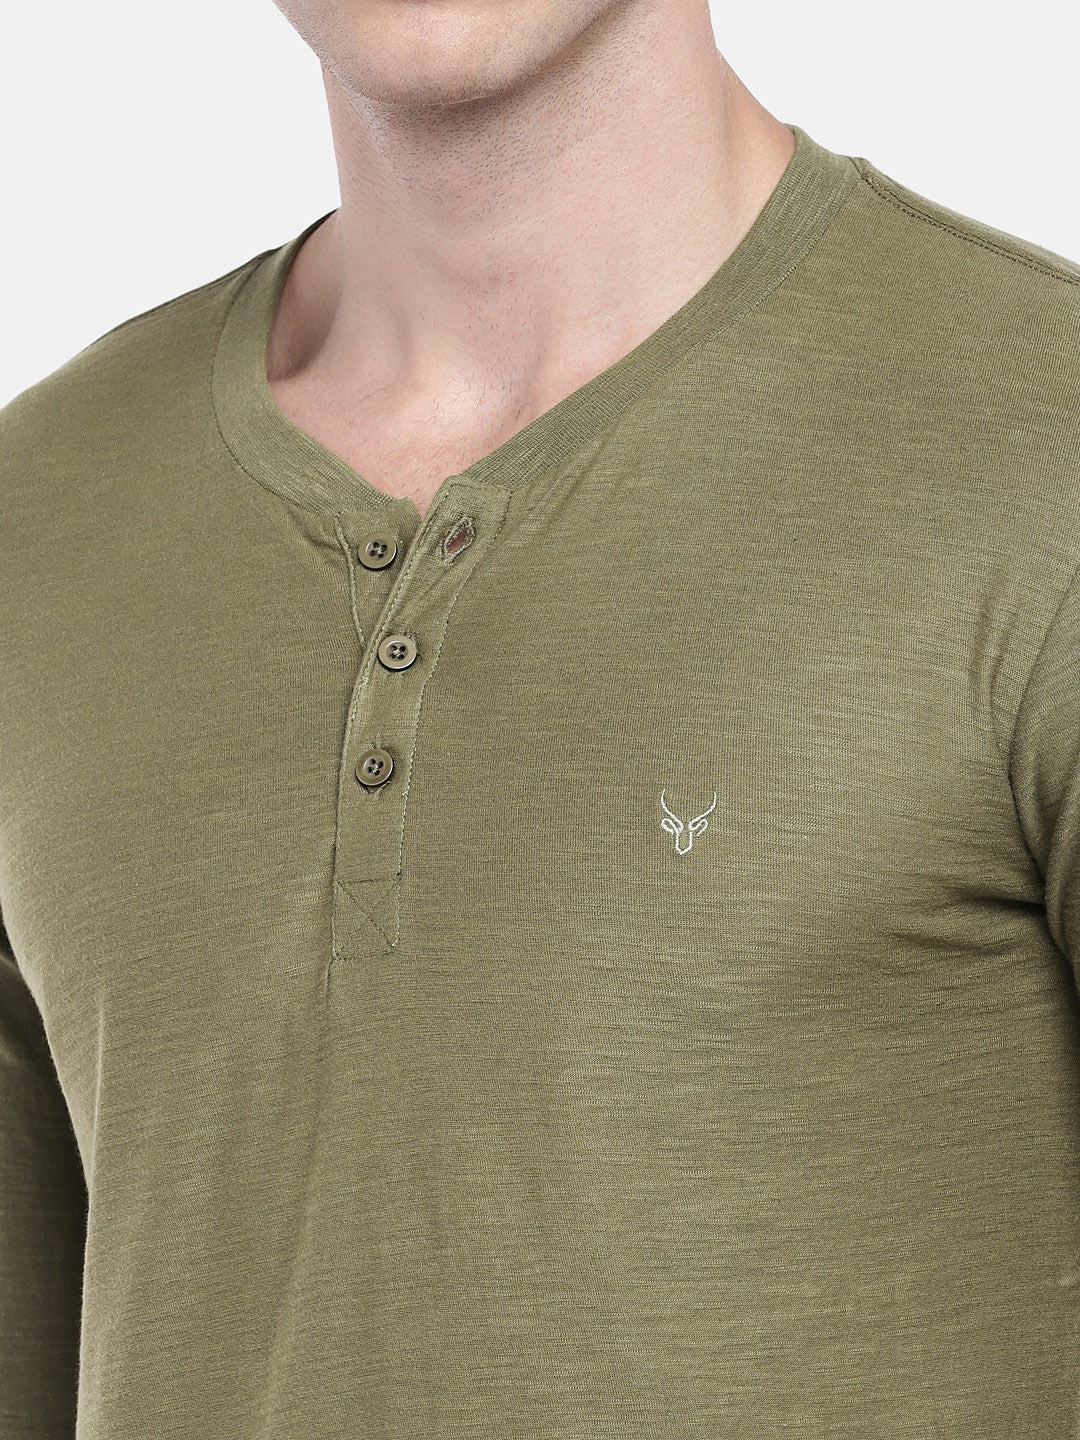 Green Solid Henley Neck T-shirt-5